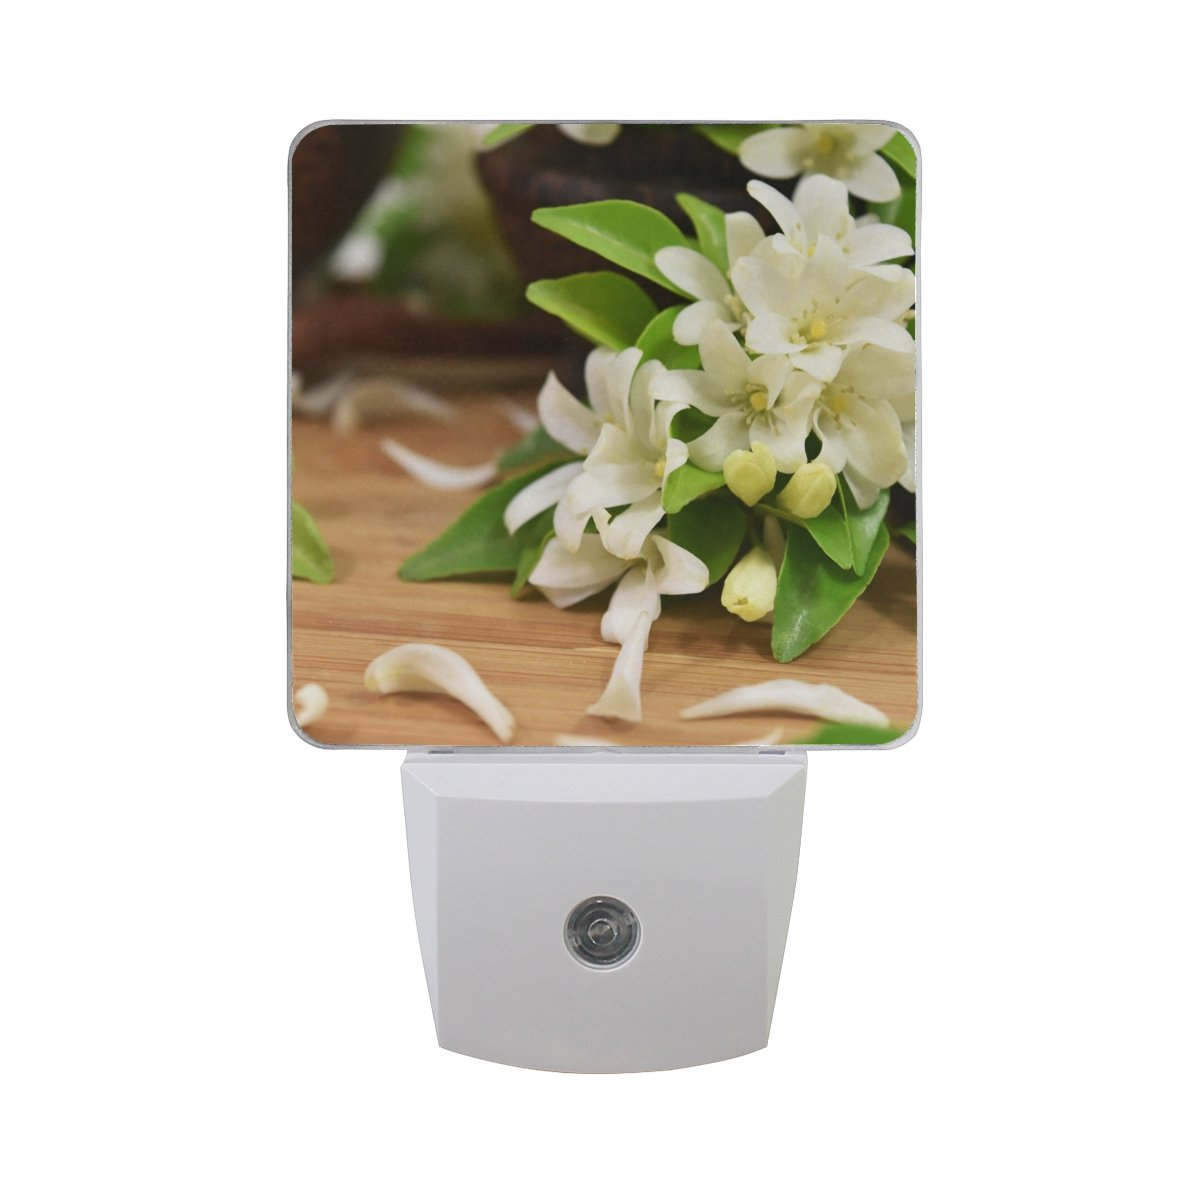 Naanle Set of 2 Thai Orange Jasmine With Flower Petal Green Leaves On Wood Auto Sensor LED Dusk To Dawn Night Light Plug In Indoor for Adults